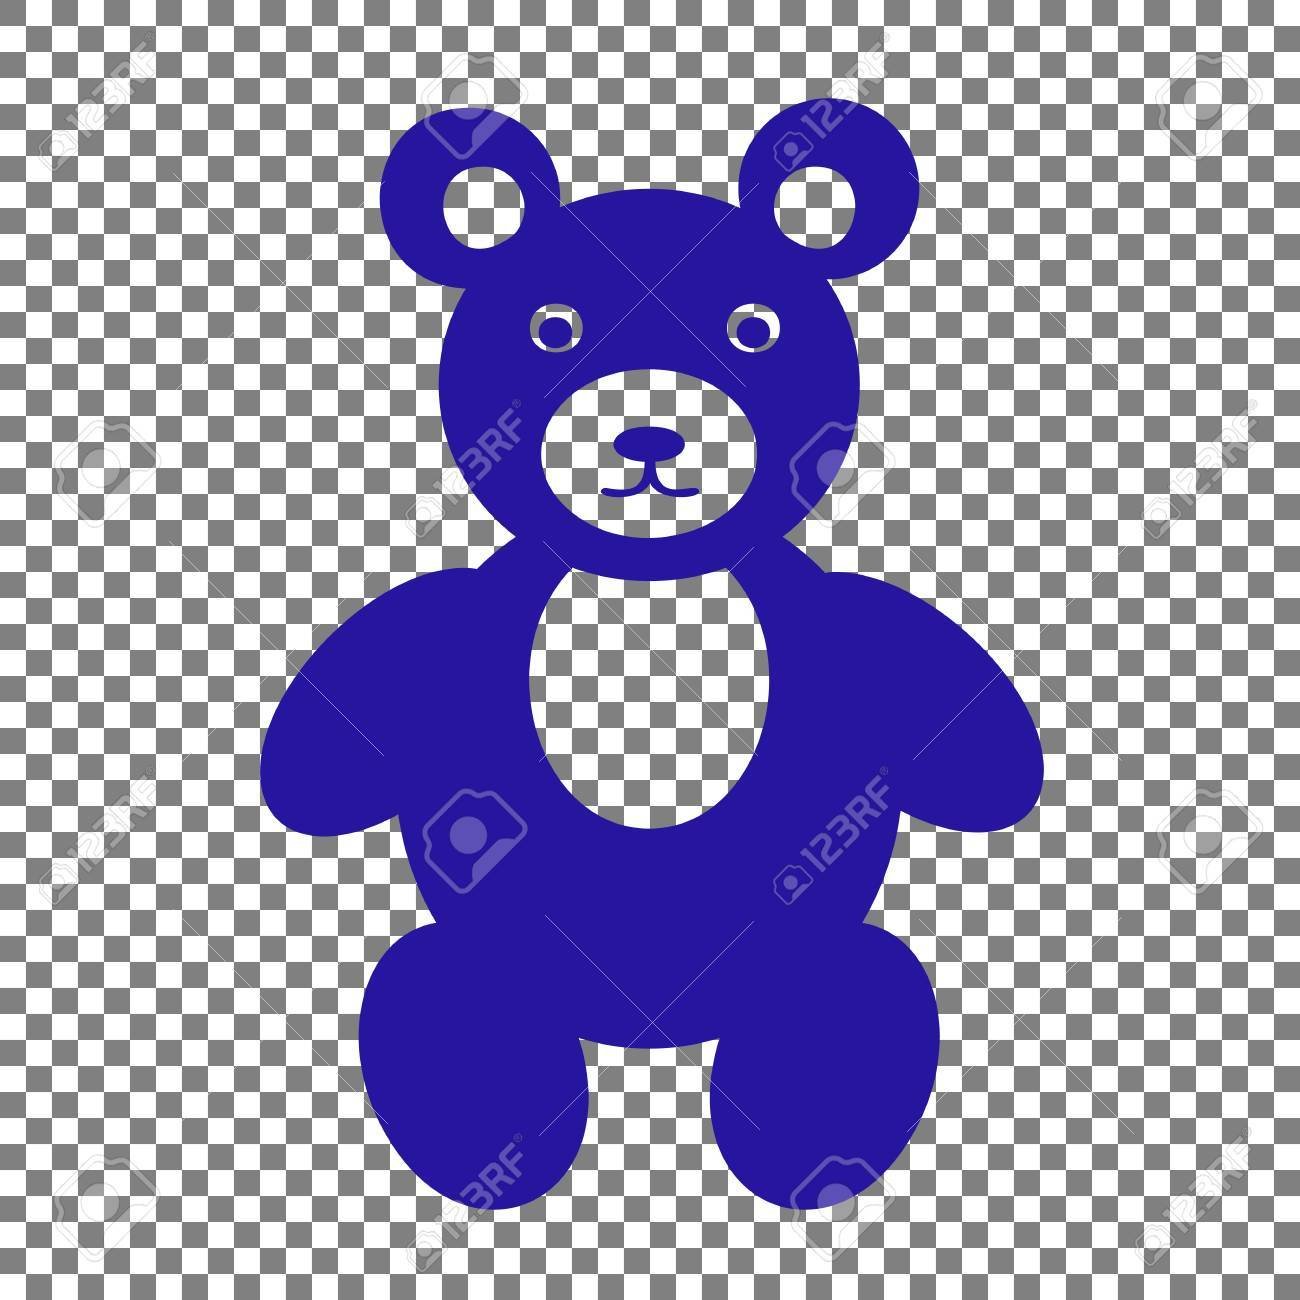 teddy bear sign illustration blue icon on transparent background royalty free cliparts vectors and stock illustration image 70629724 123rf com